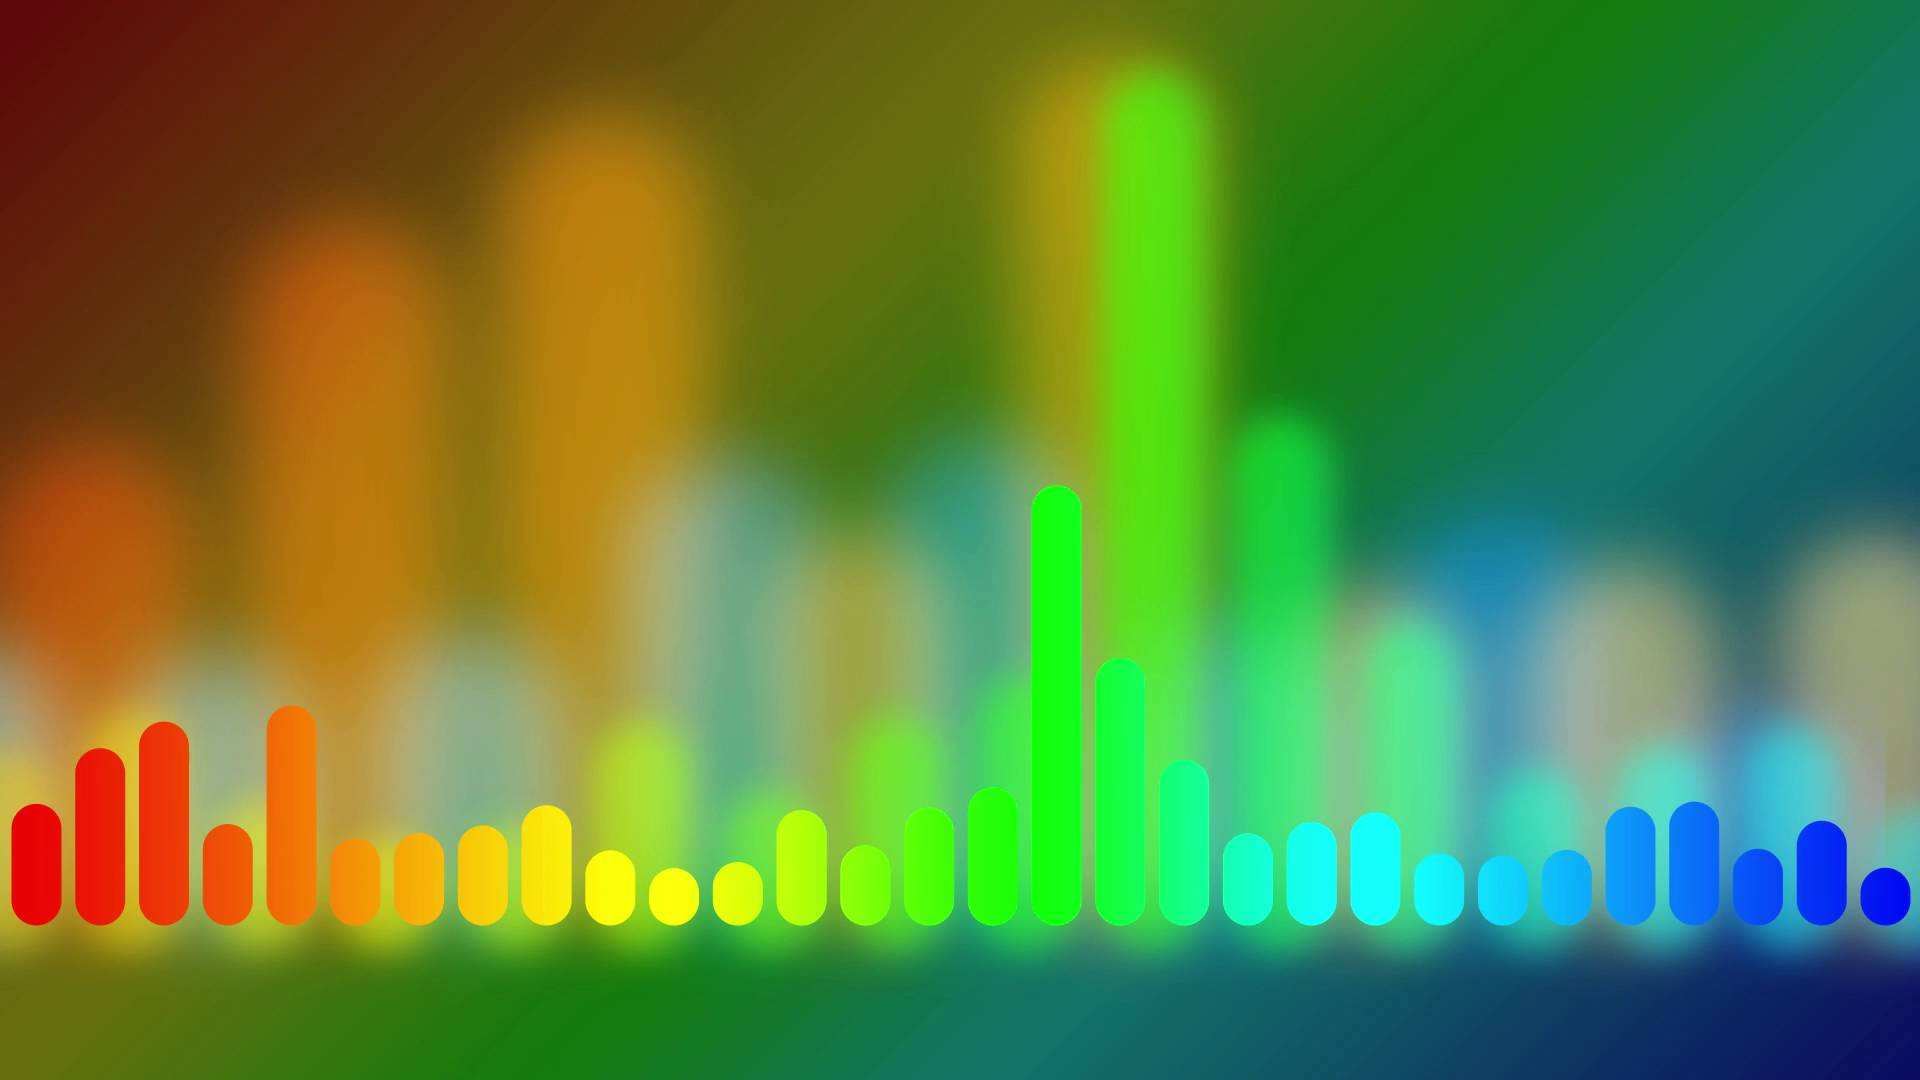 Music Background Image For Music Website 1213314 Hd